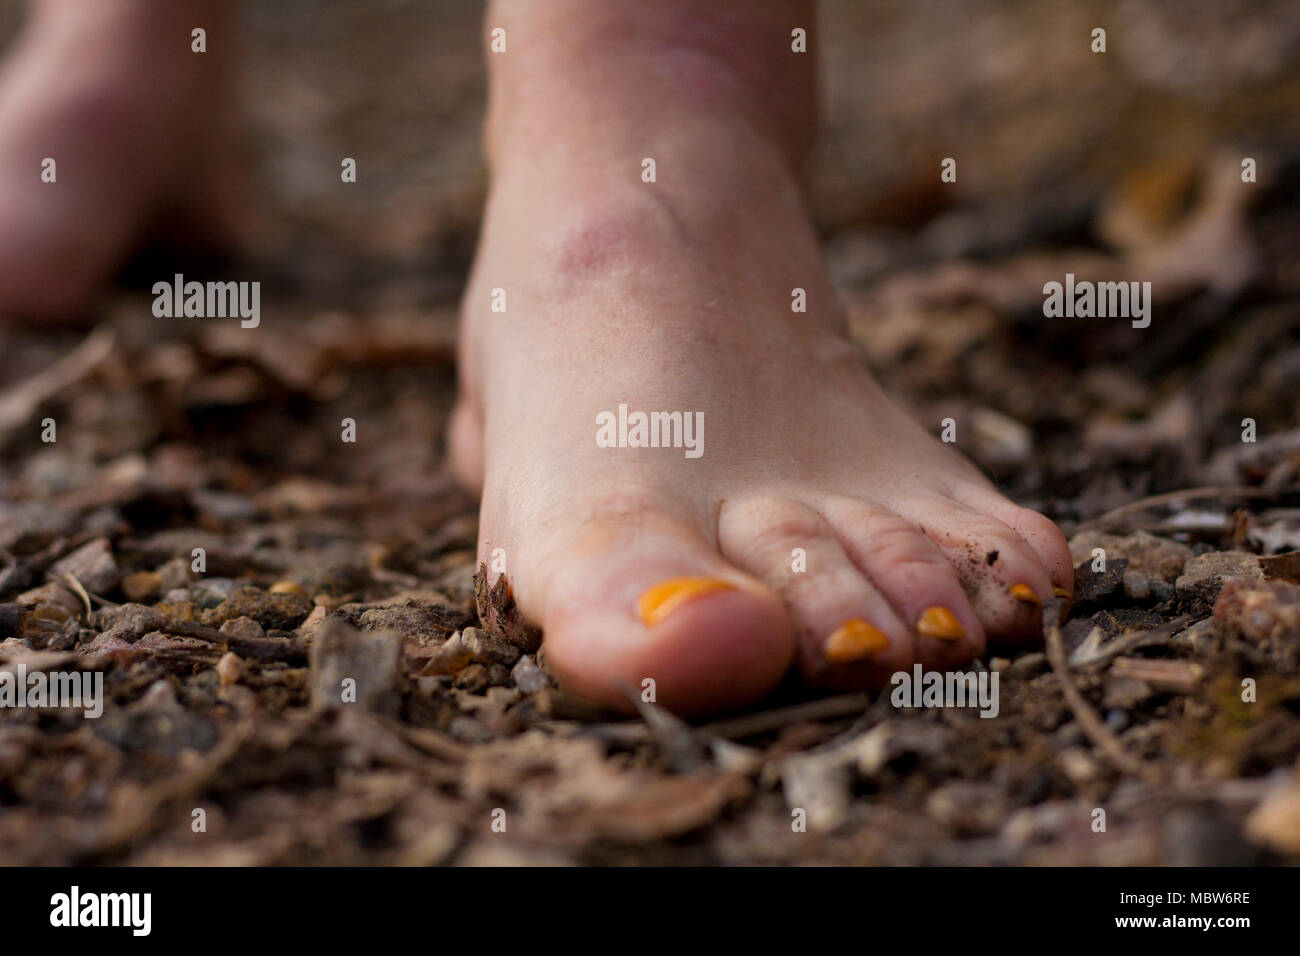 Forest bathing and Barefoot walking with feet in the fertile earth and soil under the toes with yellow polish. - Stock Image